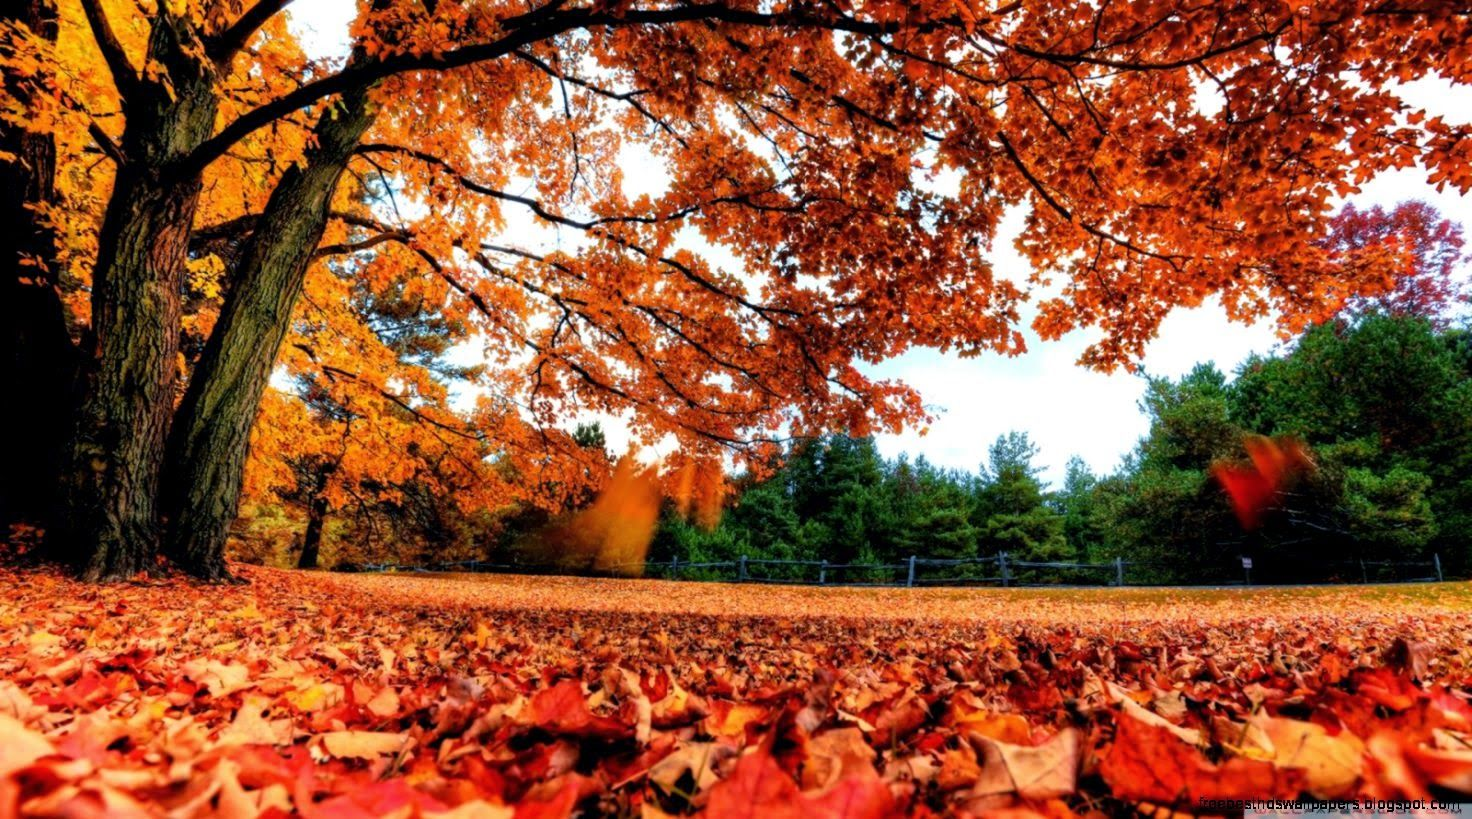 Autumn Country HD Desktop Wallpaper Widescreen High Definition